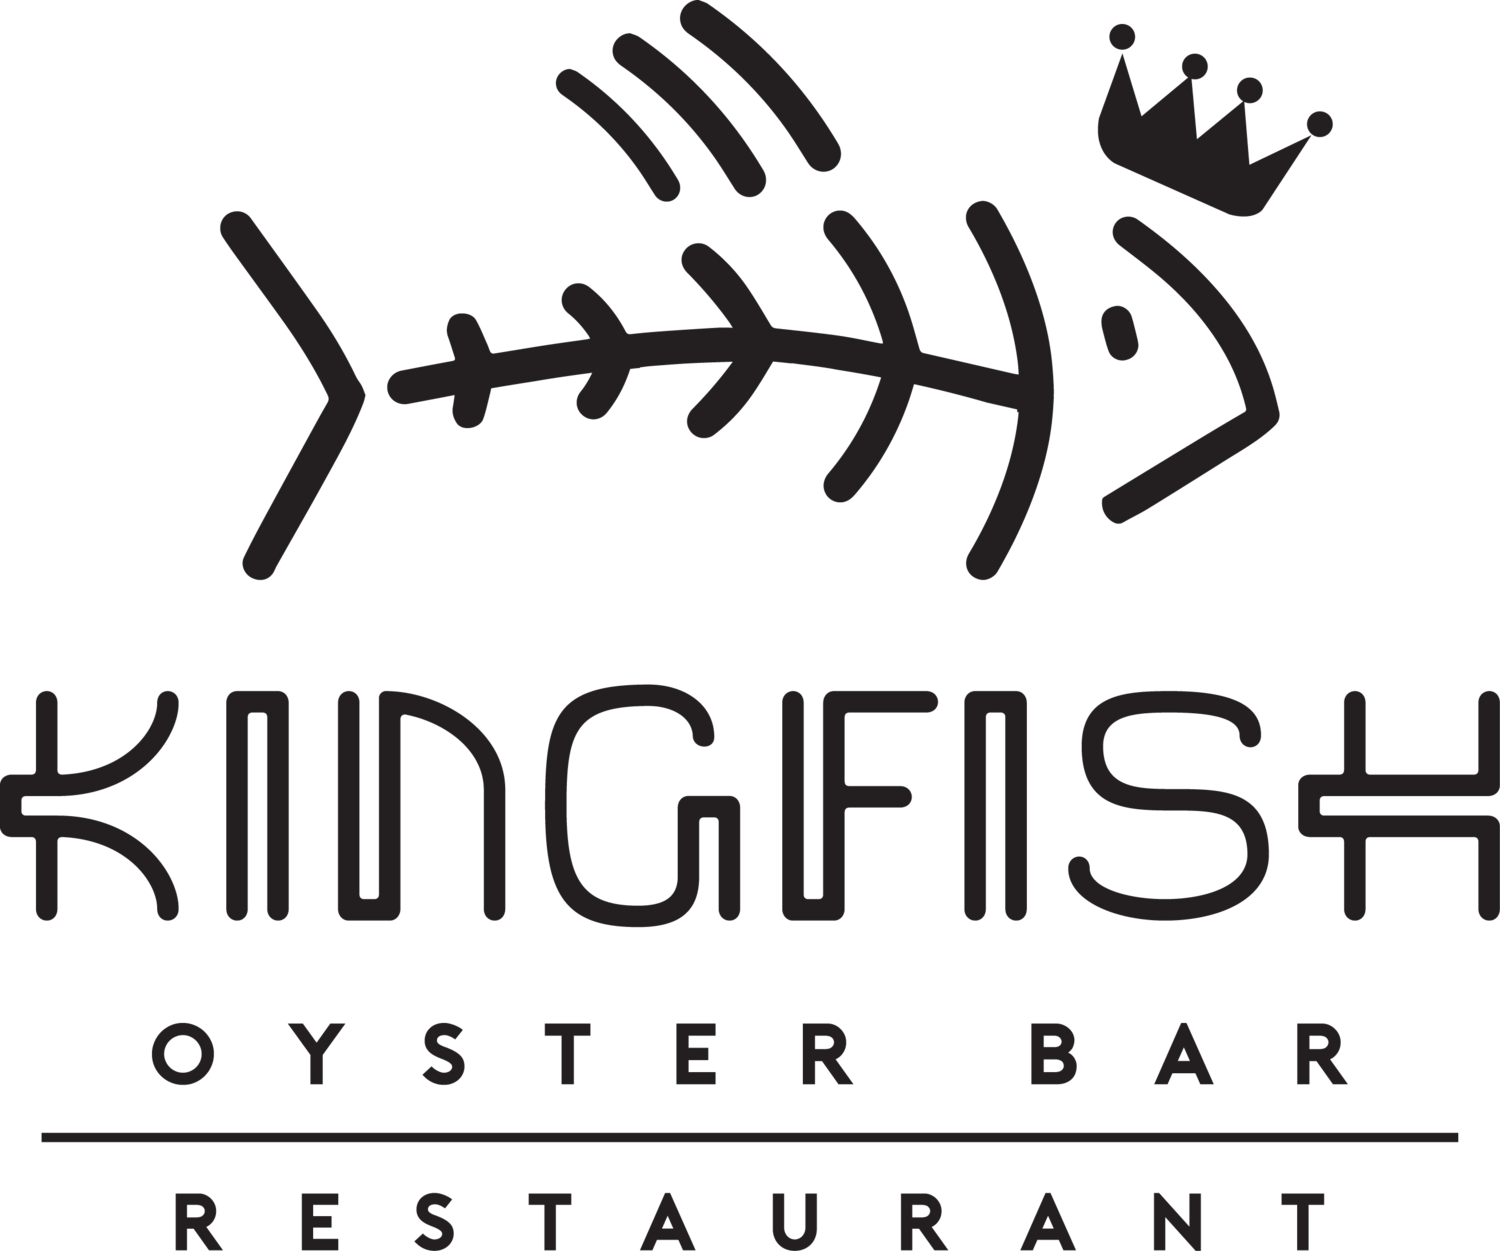 Kingfish Oyster Bar & Restaurant